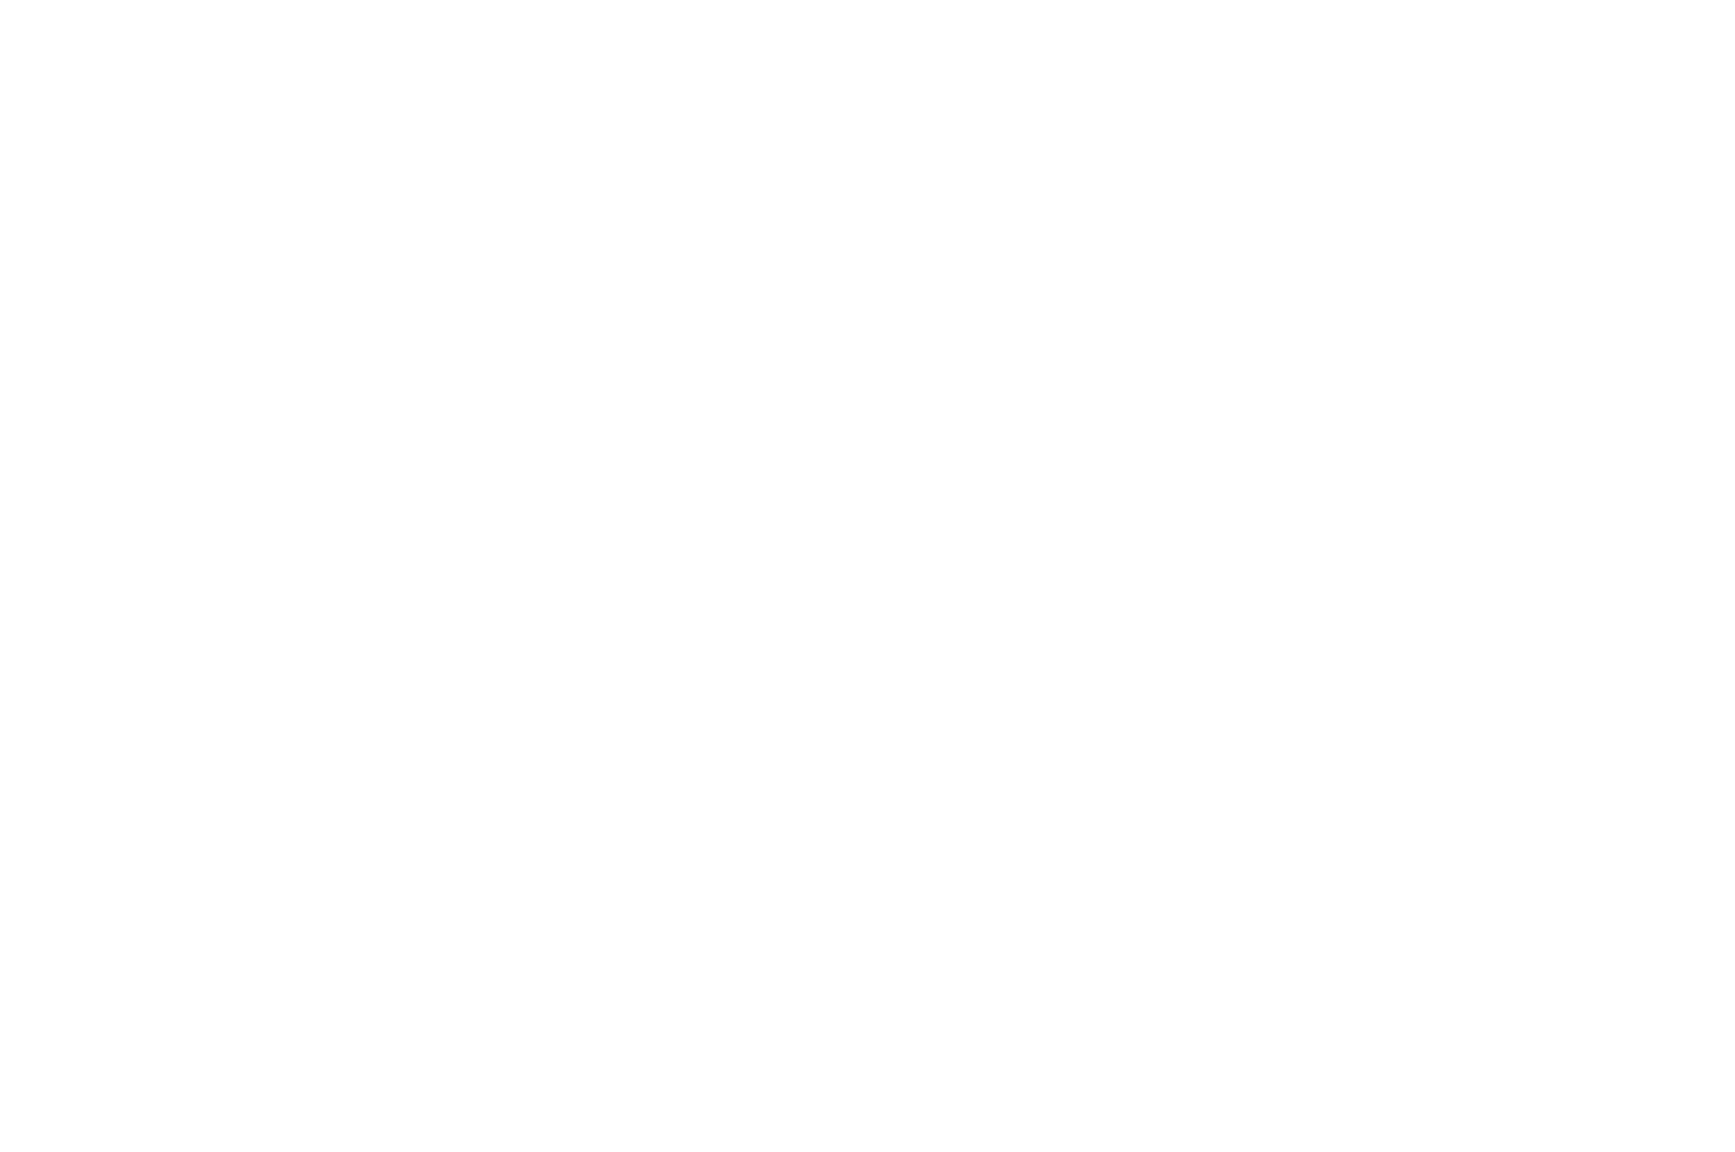 OFFICIAL COMPETITION - BIFAN - 2018